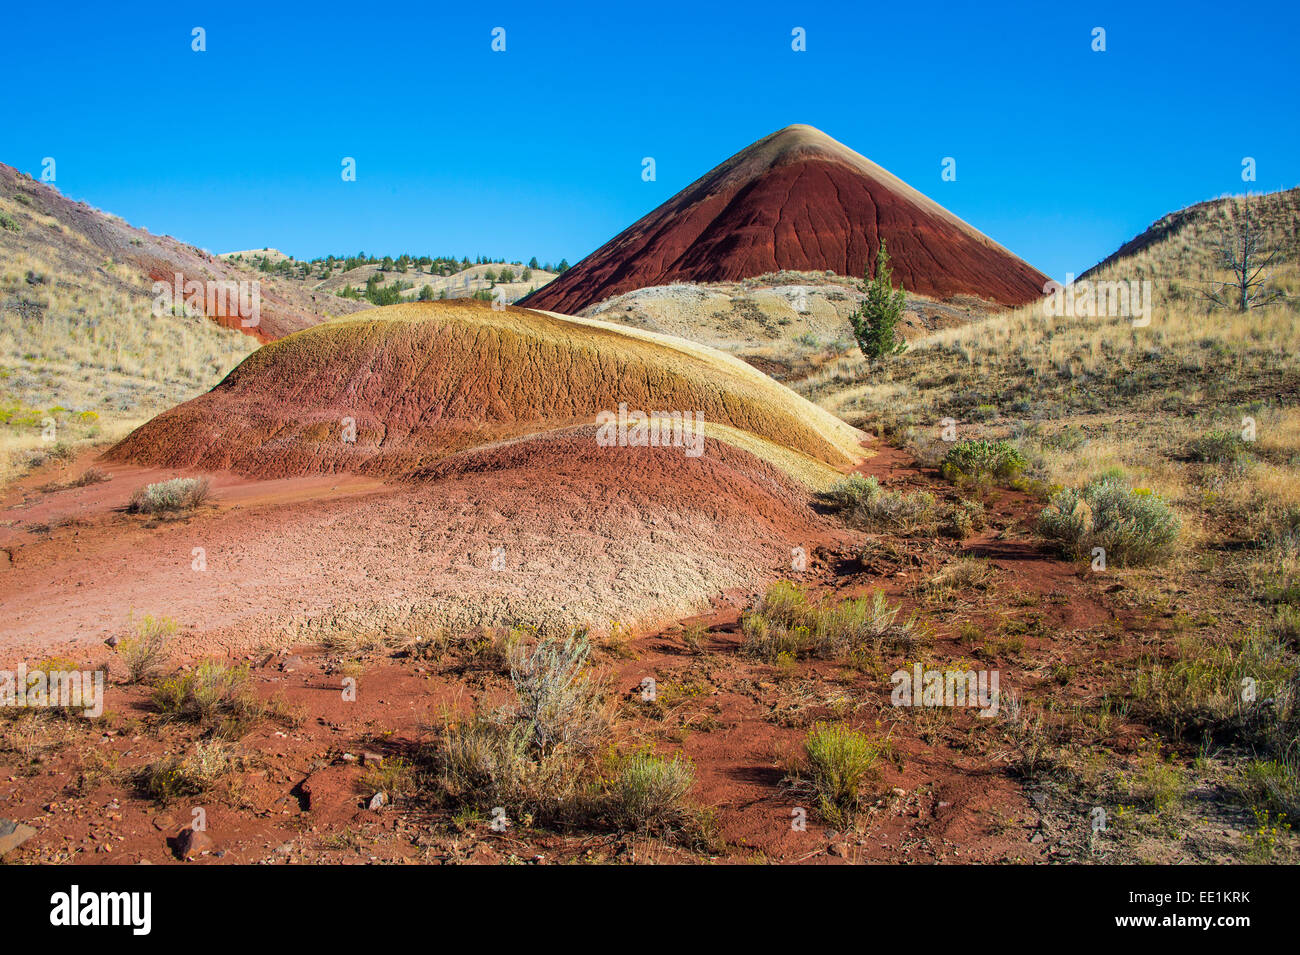 Multicoloured strata hill in the Painted Hills unit in the John Day Fossil Beds National Monument, Oregon, USA - Stock Image